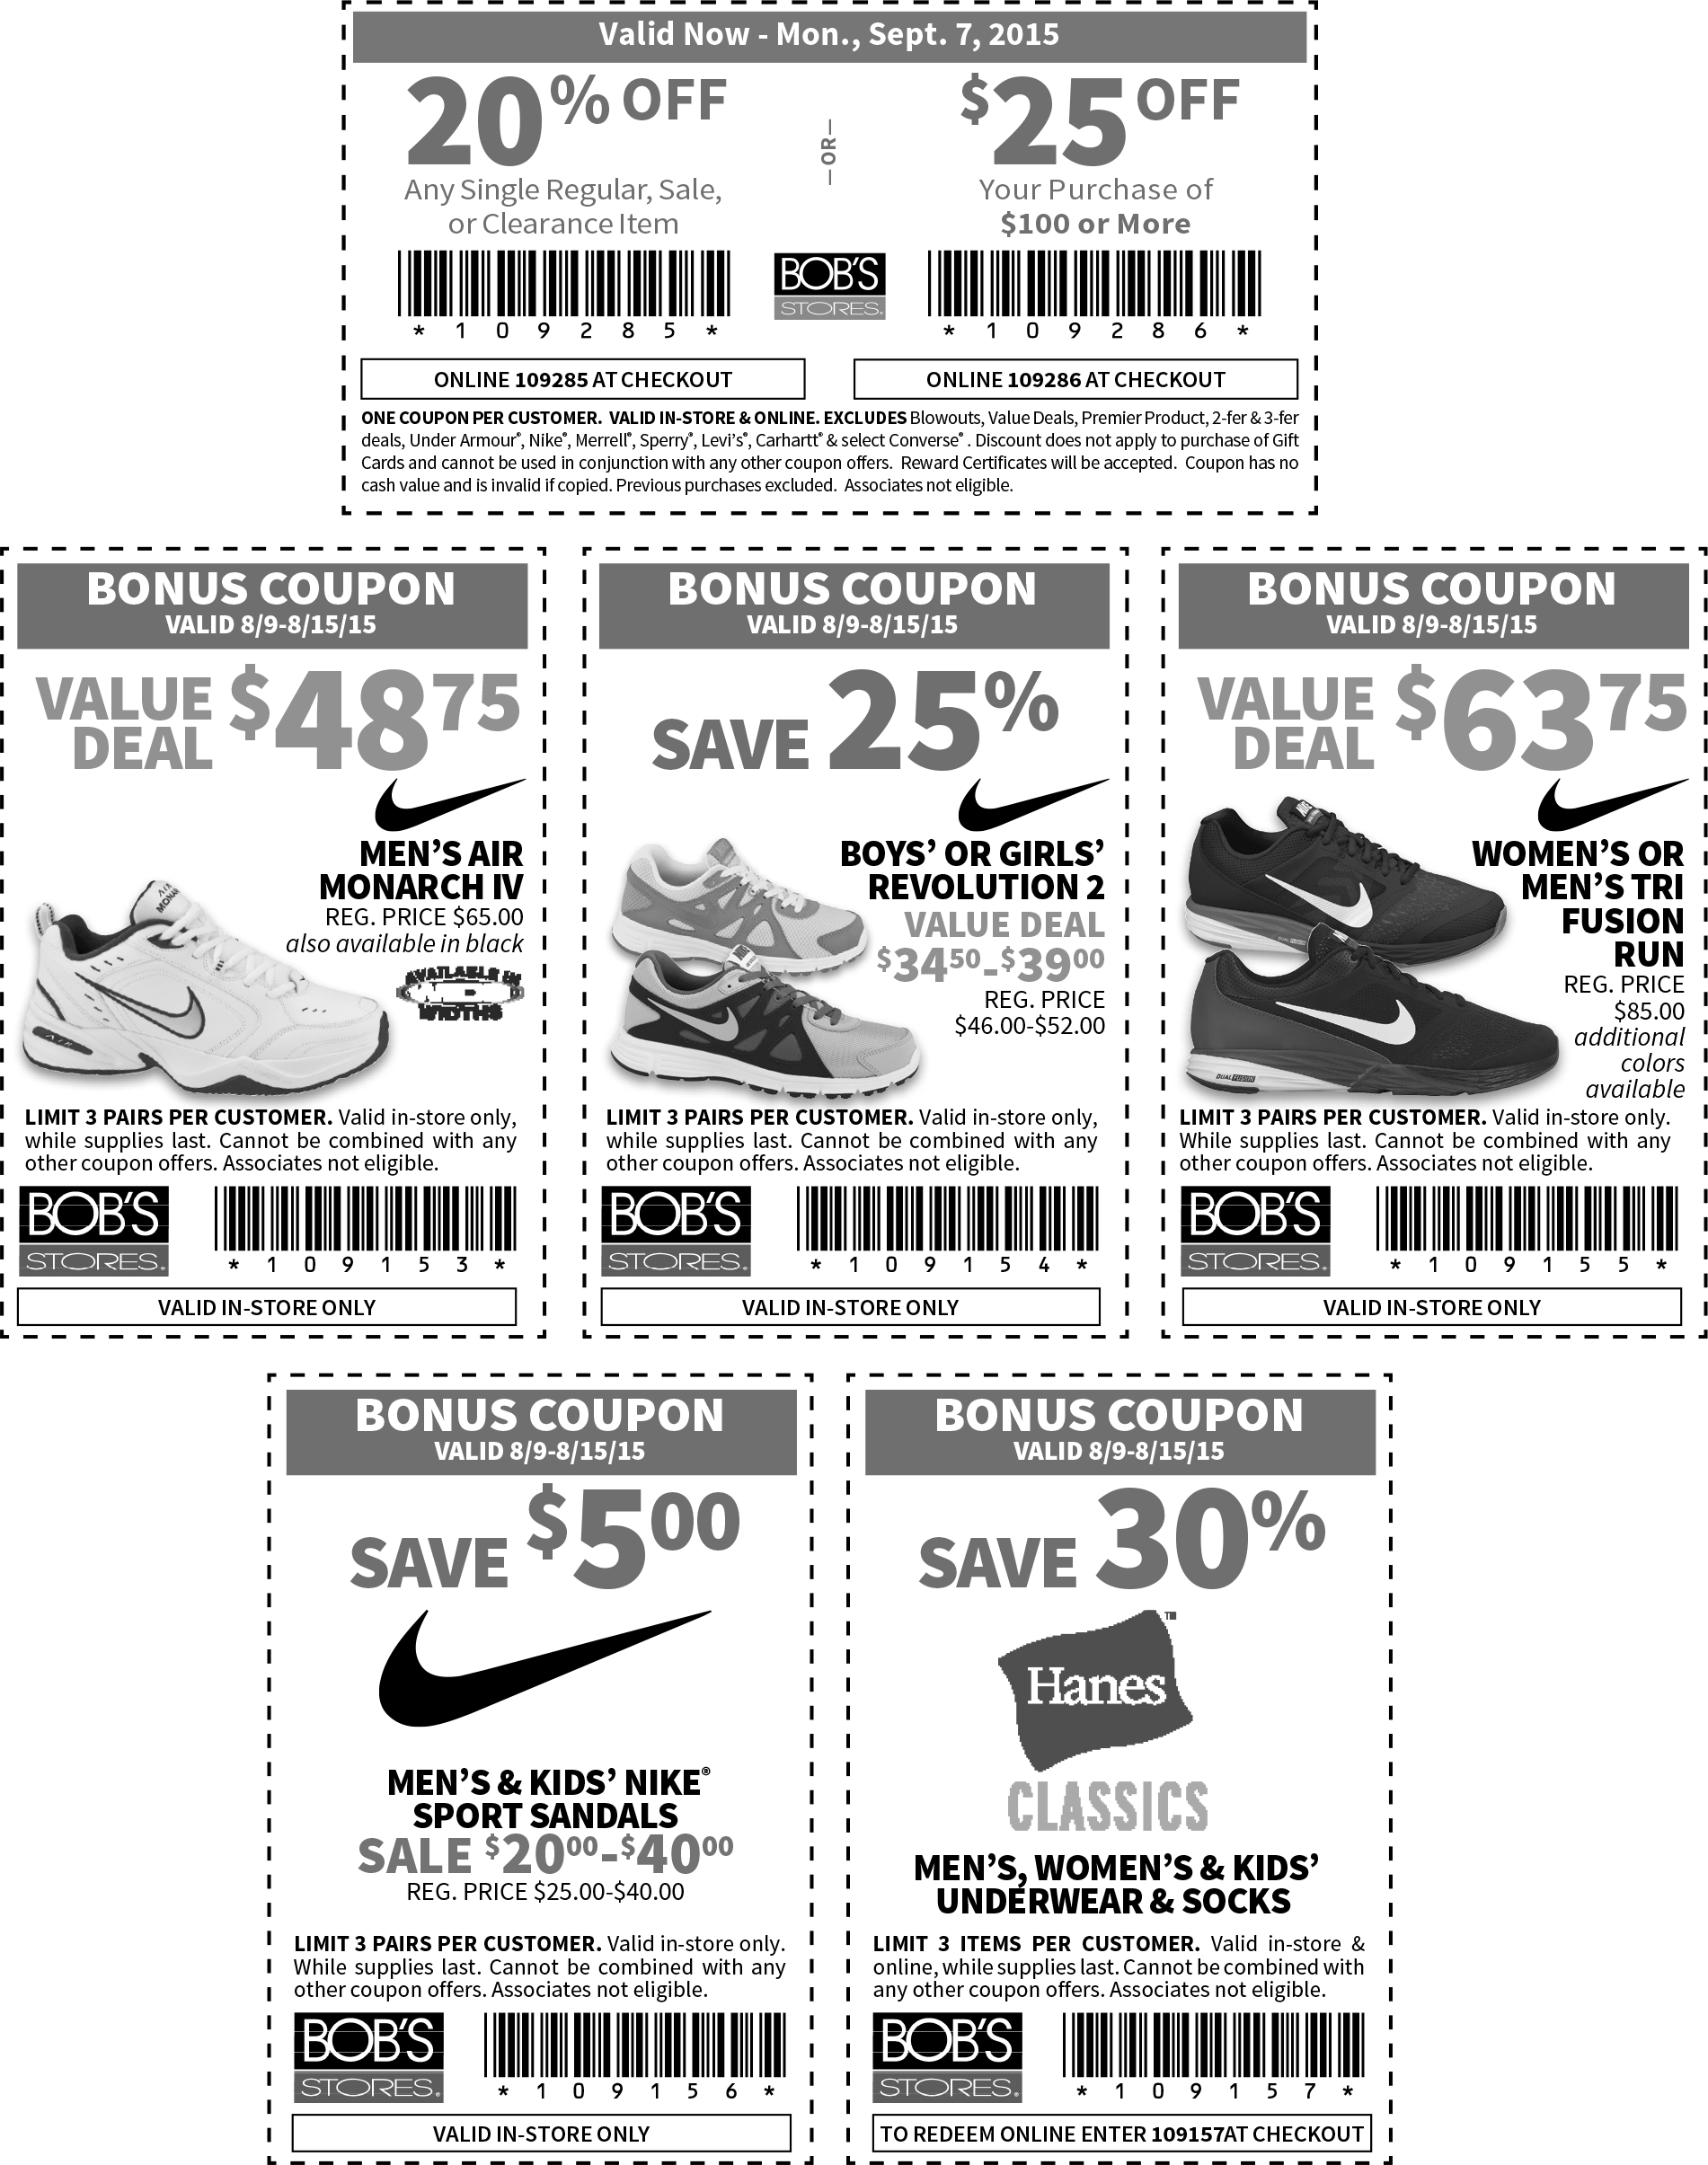 Bobs Stores Coupon June 2017 20% off a single item & more at Bobs Stores, or online via promo code 109285